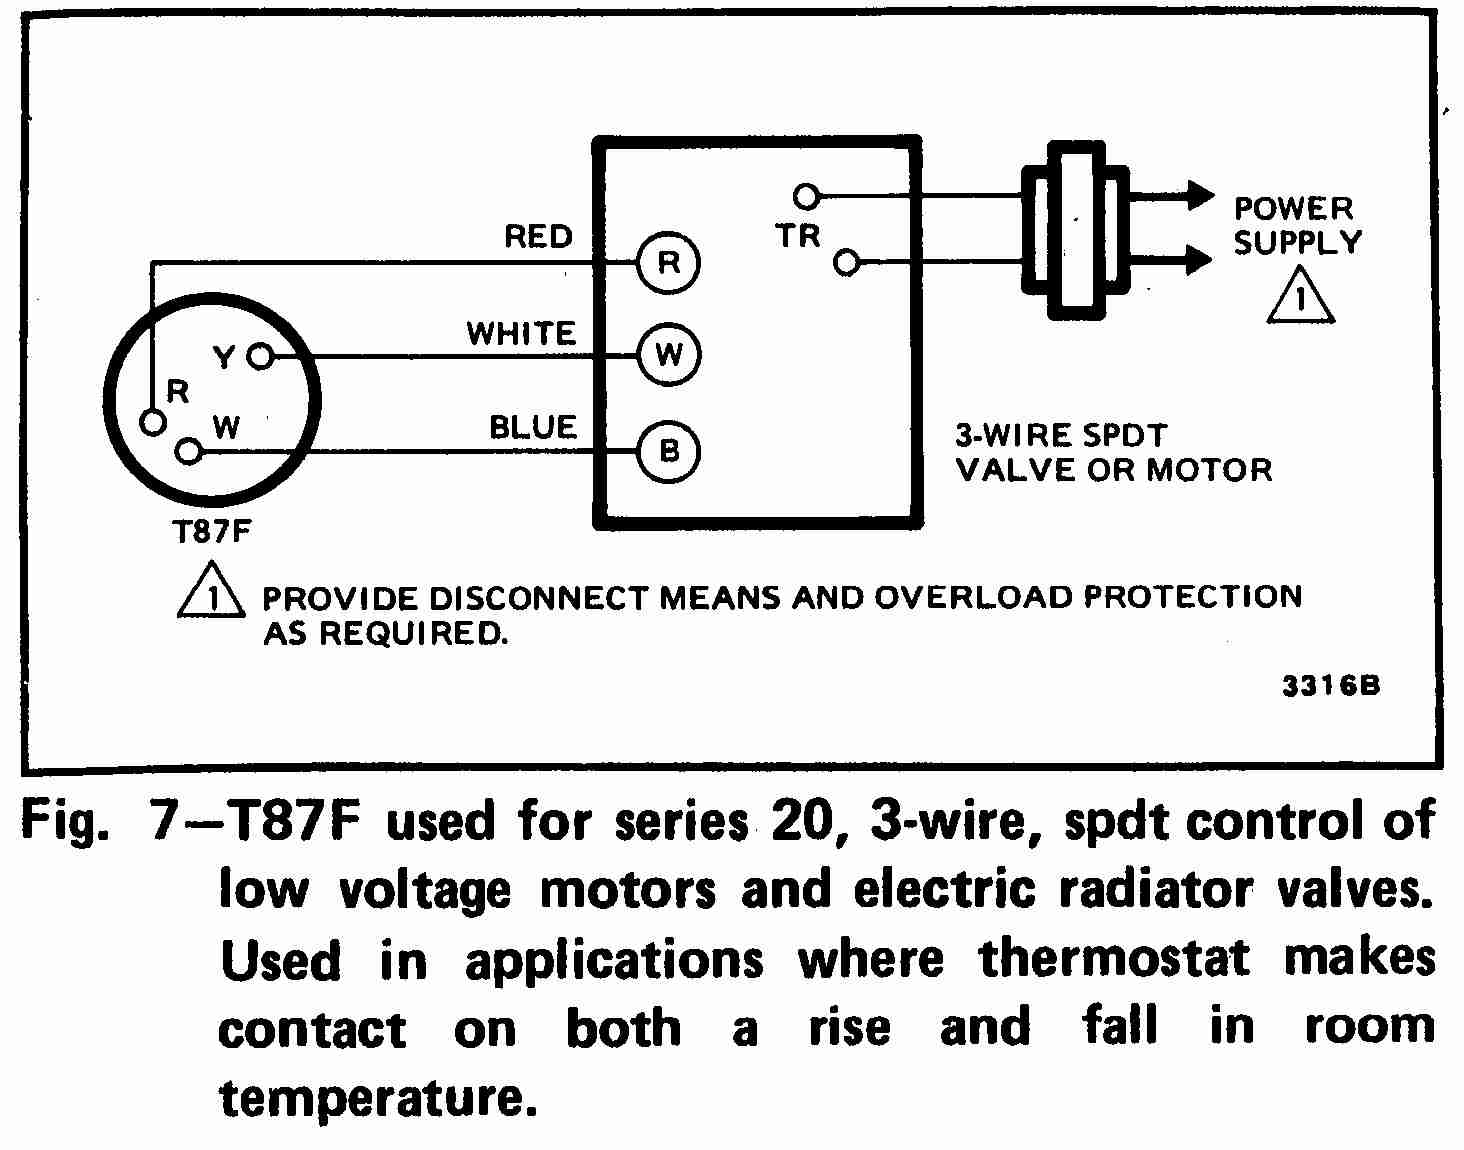 TT_T87F_0002_3W2_DJF room thermostat wiring diagrams for hvac systems fcu wiring diagram at cos-gaming.co